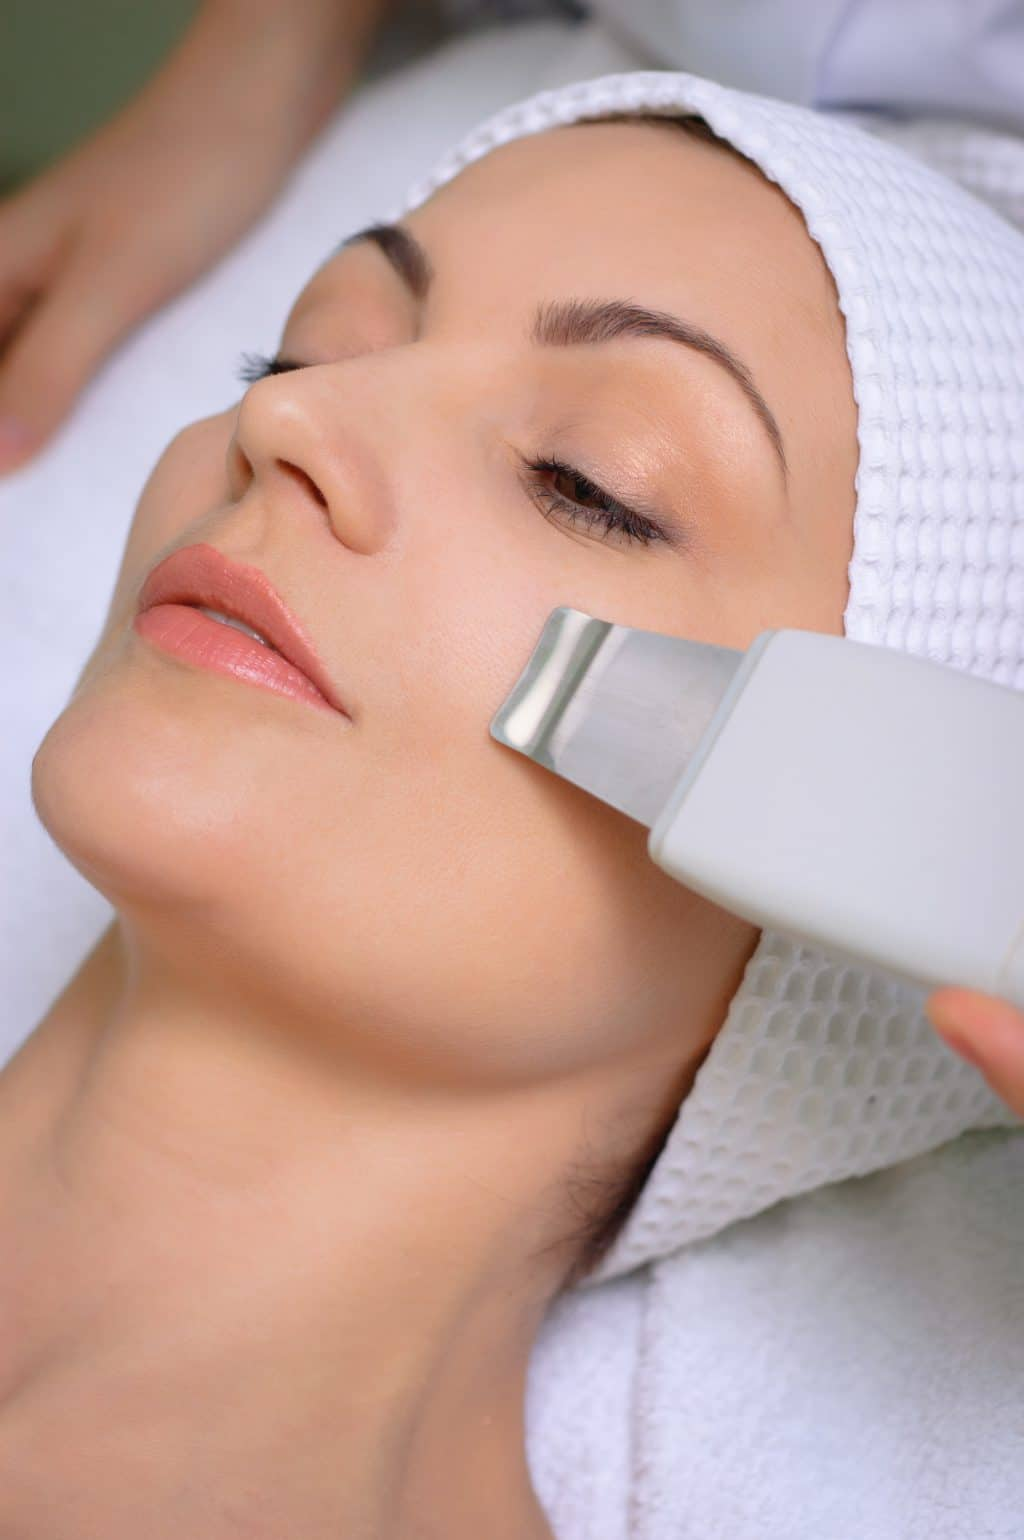 Ultrasound,woman,ultrasound skin cleaning,beauty salon,Latisse Product , Botox Cosmetic treatments, facial wrinkle treatments, Ultrasound treatments, Acne Awareness, Pittsburgh Medical Mall, medical providers network, medical providers, medical care providers network, medical supplies, deals, medical offers near me